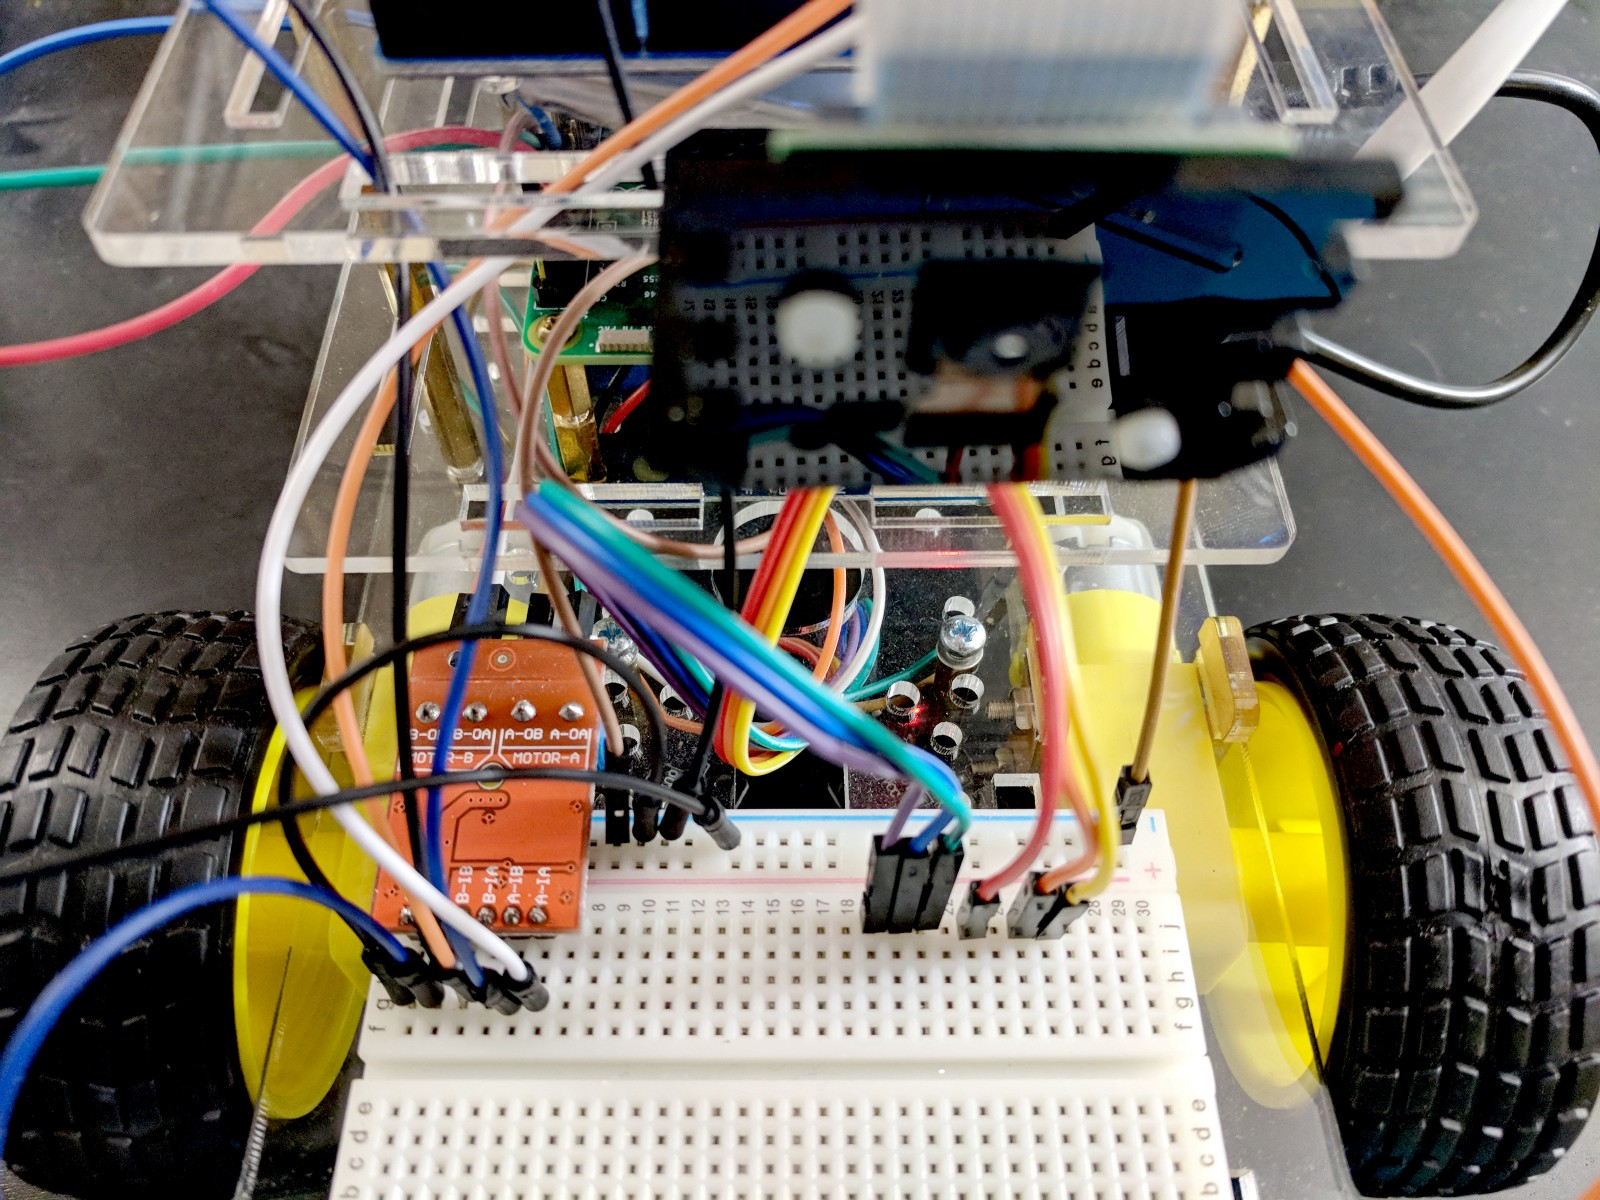 Apply Coursera Control of Mobile Robots with ROS and ROSbots